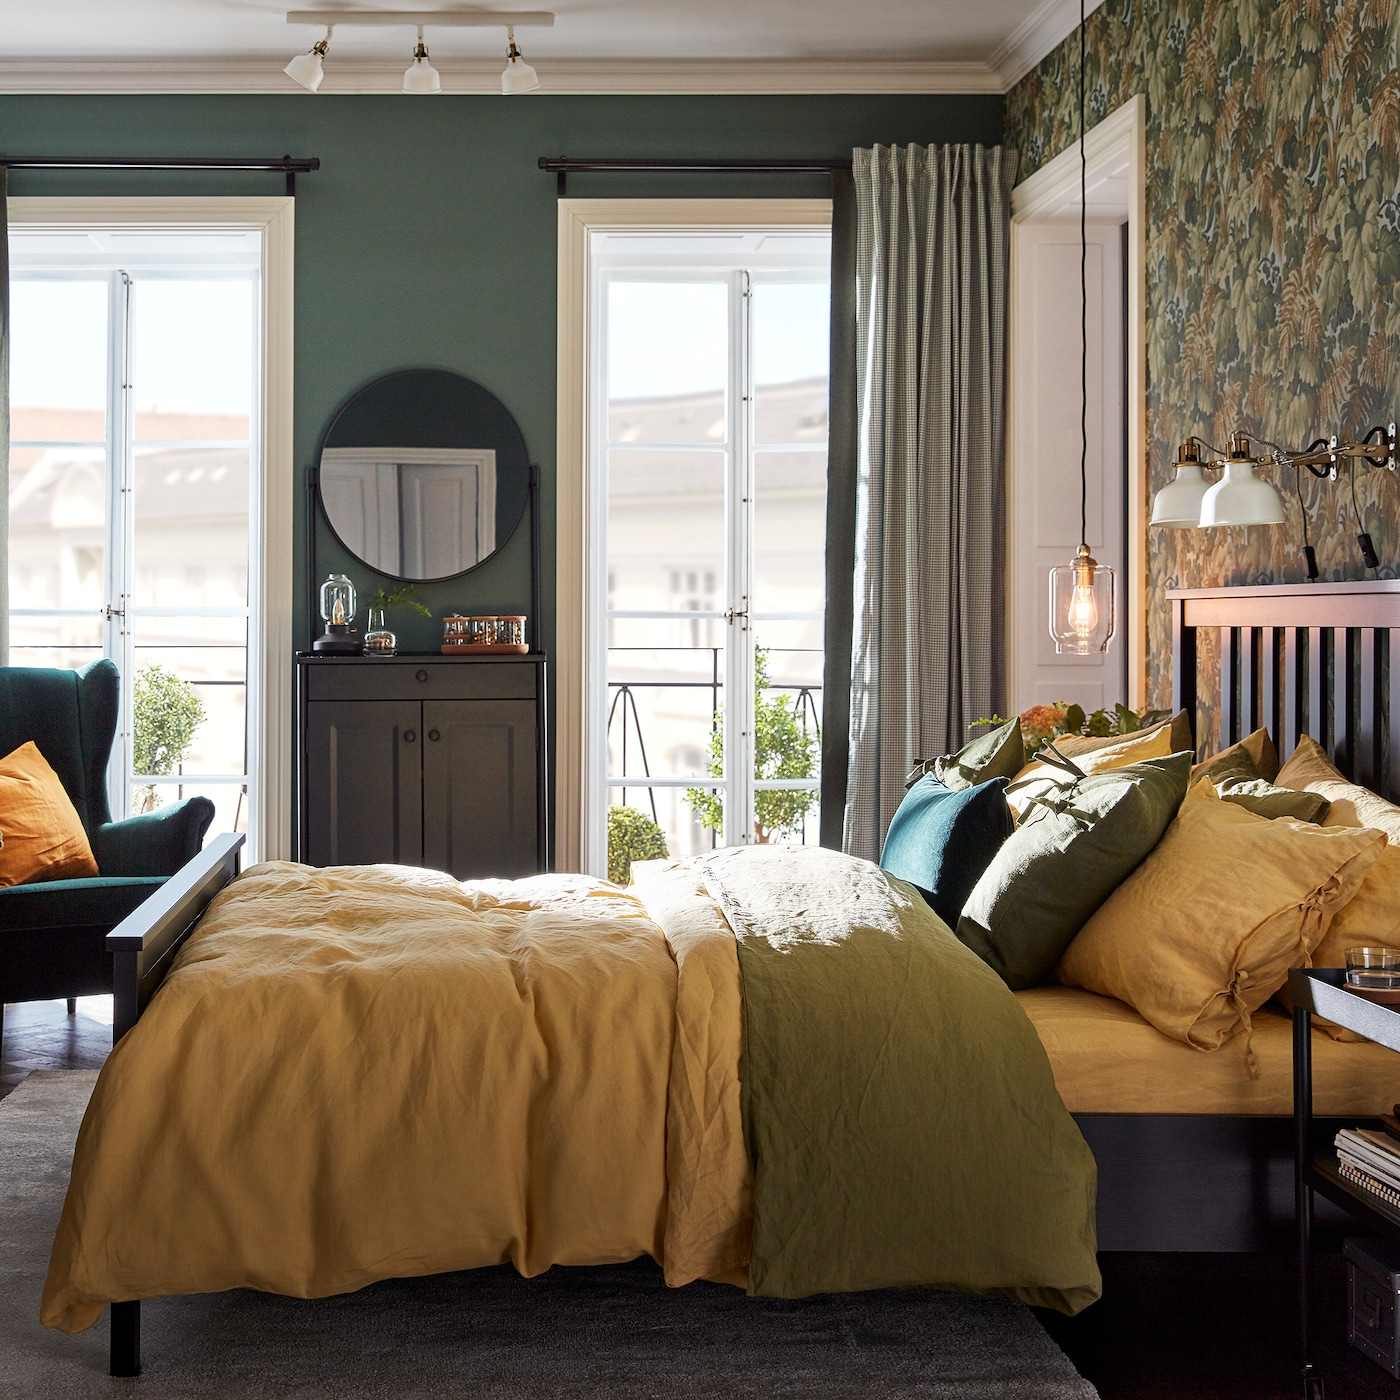 A bedroom with a bed with pillowcases and quilt covers in green and yellow, a cabinet with a mirror and a green wing chair.